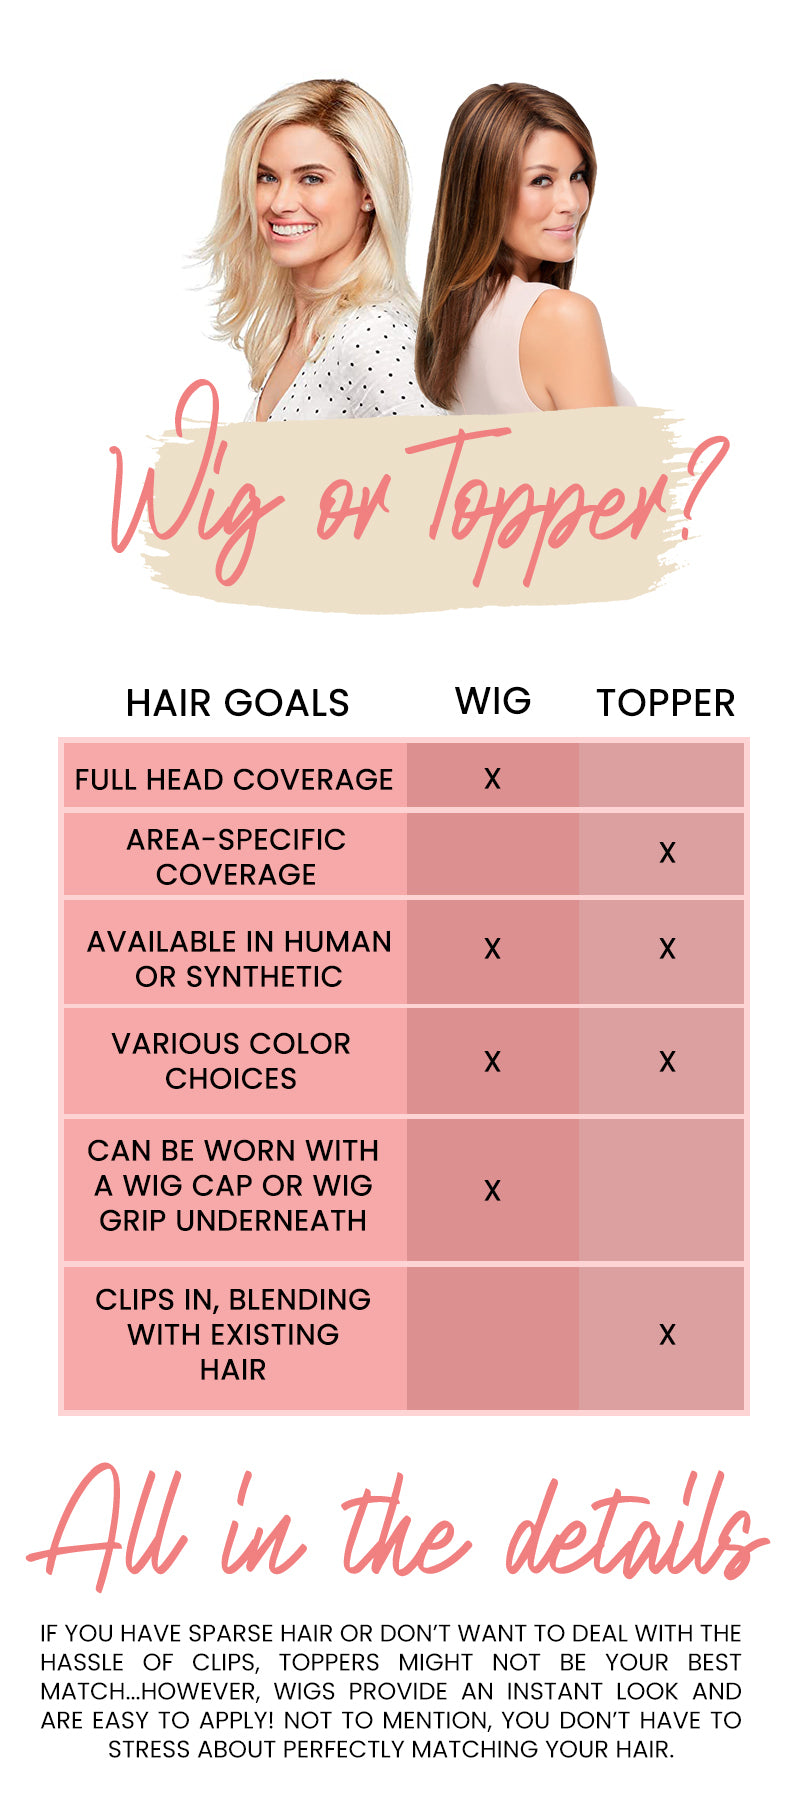 Topper or wig